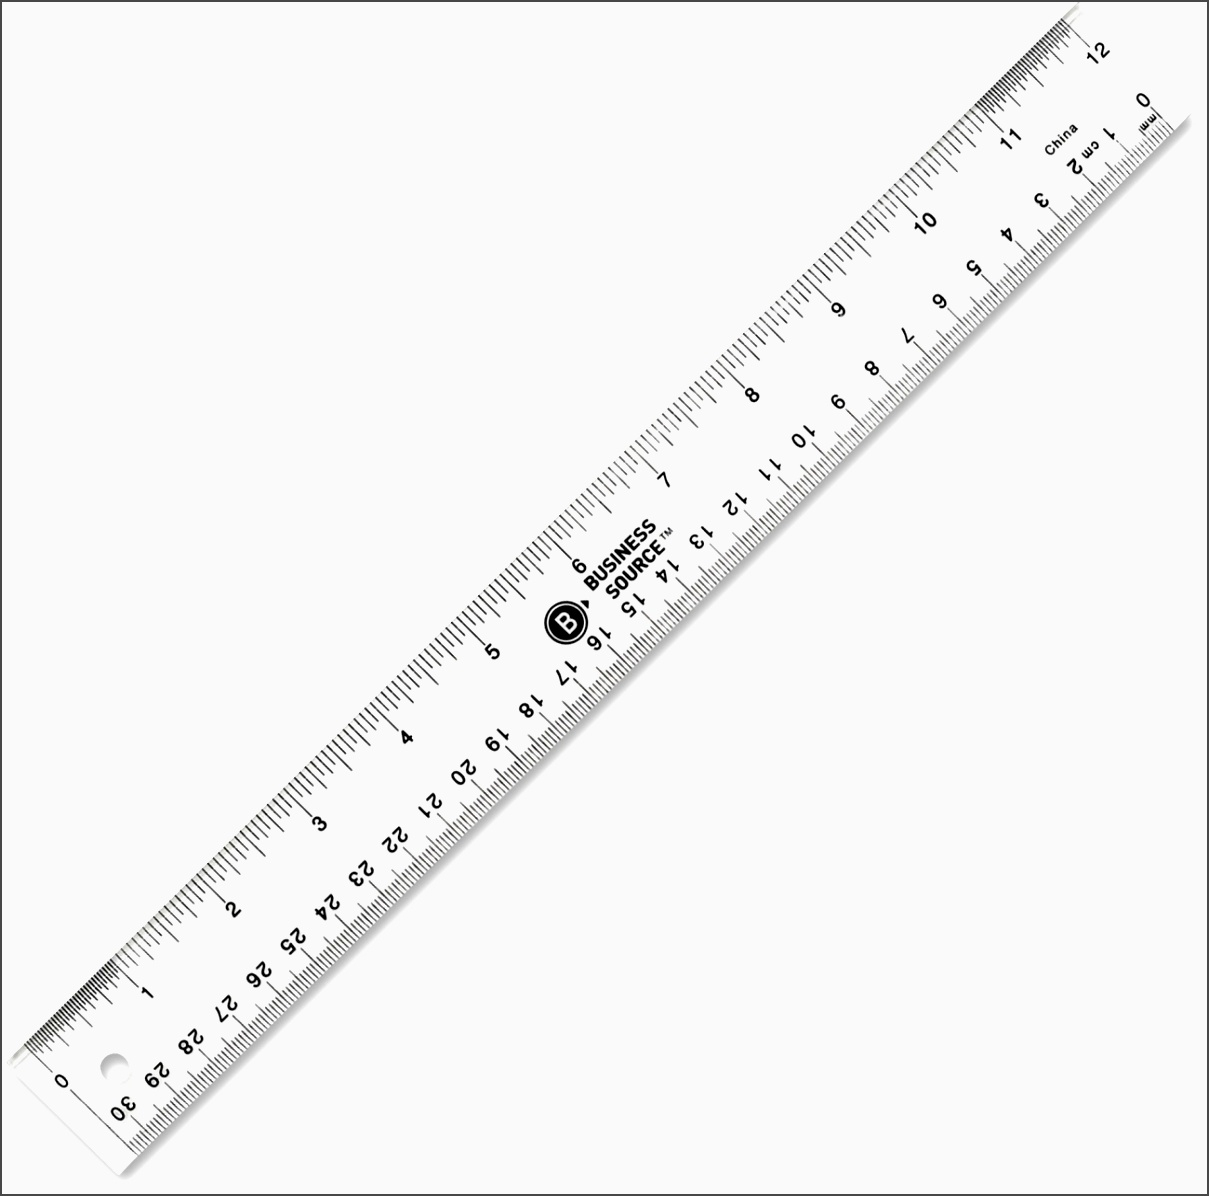 69 Free Printable Rulers | Kittybabylove